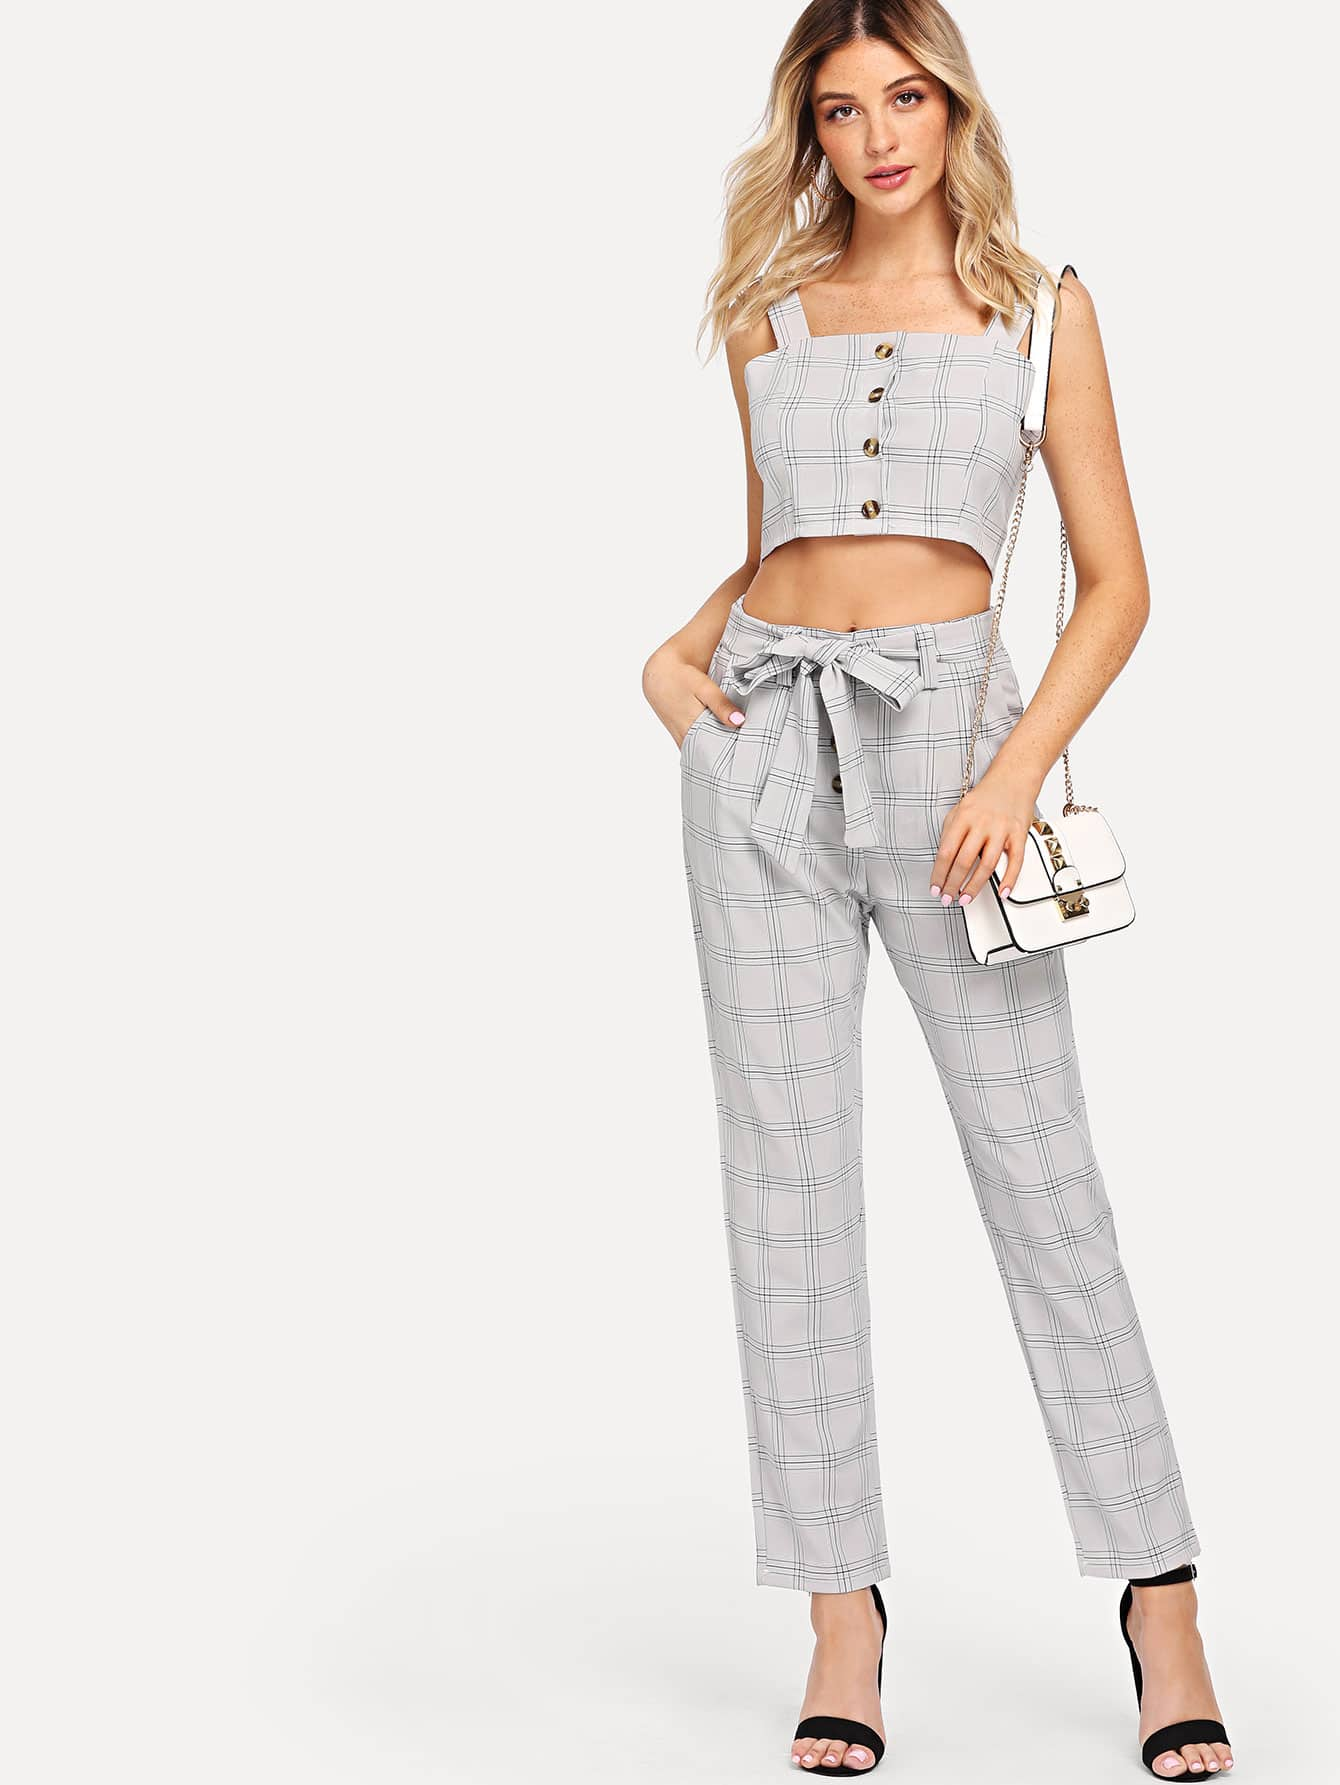 Button Front Crop Top With Pants valera sn 9100y